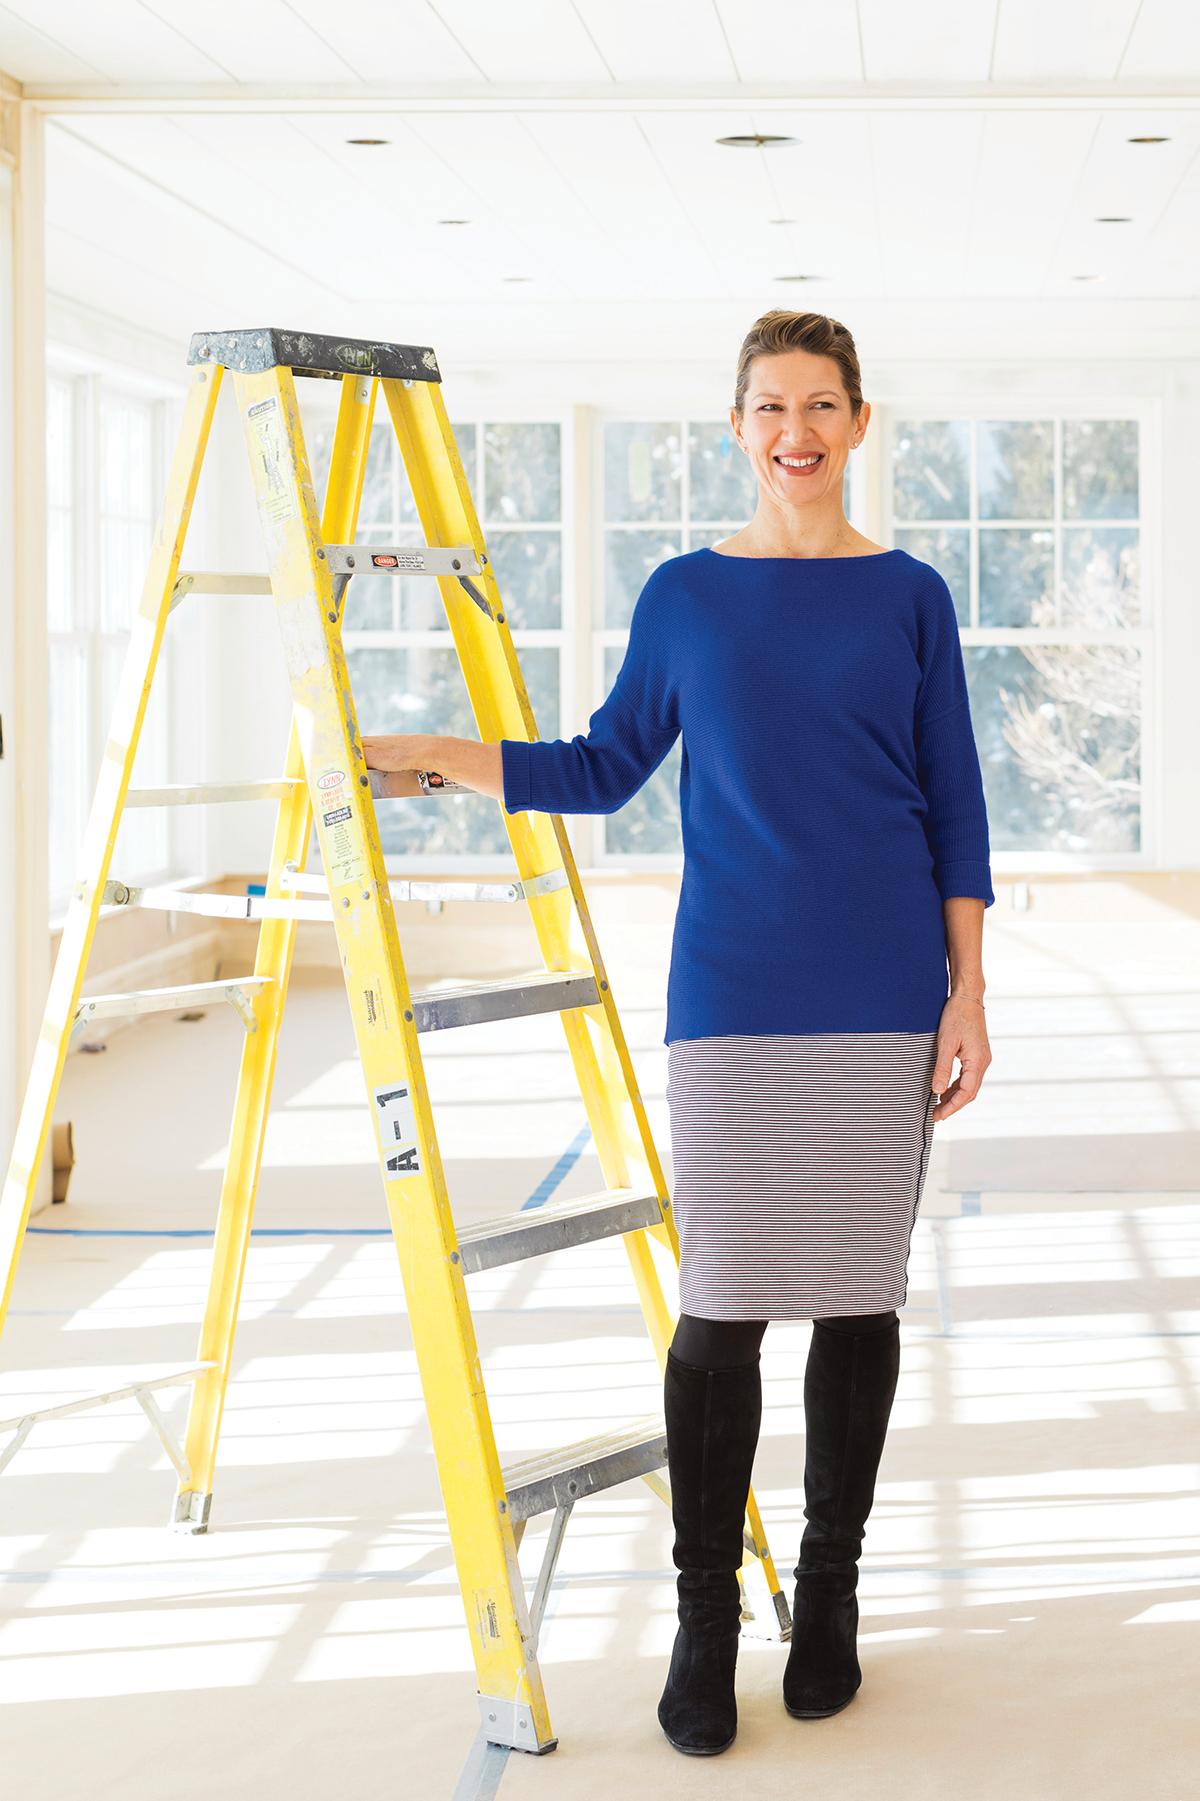 sarah lawson owner s+h construction boston